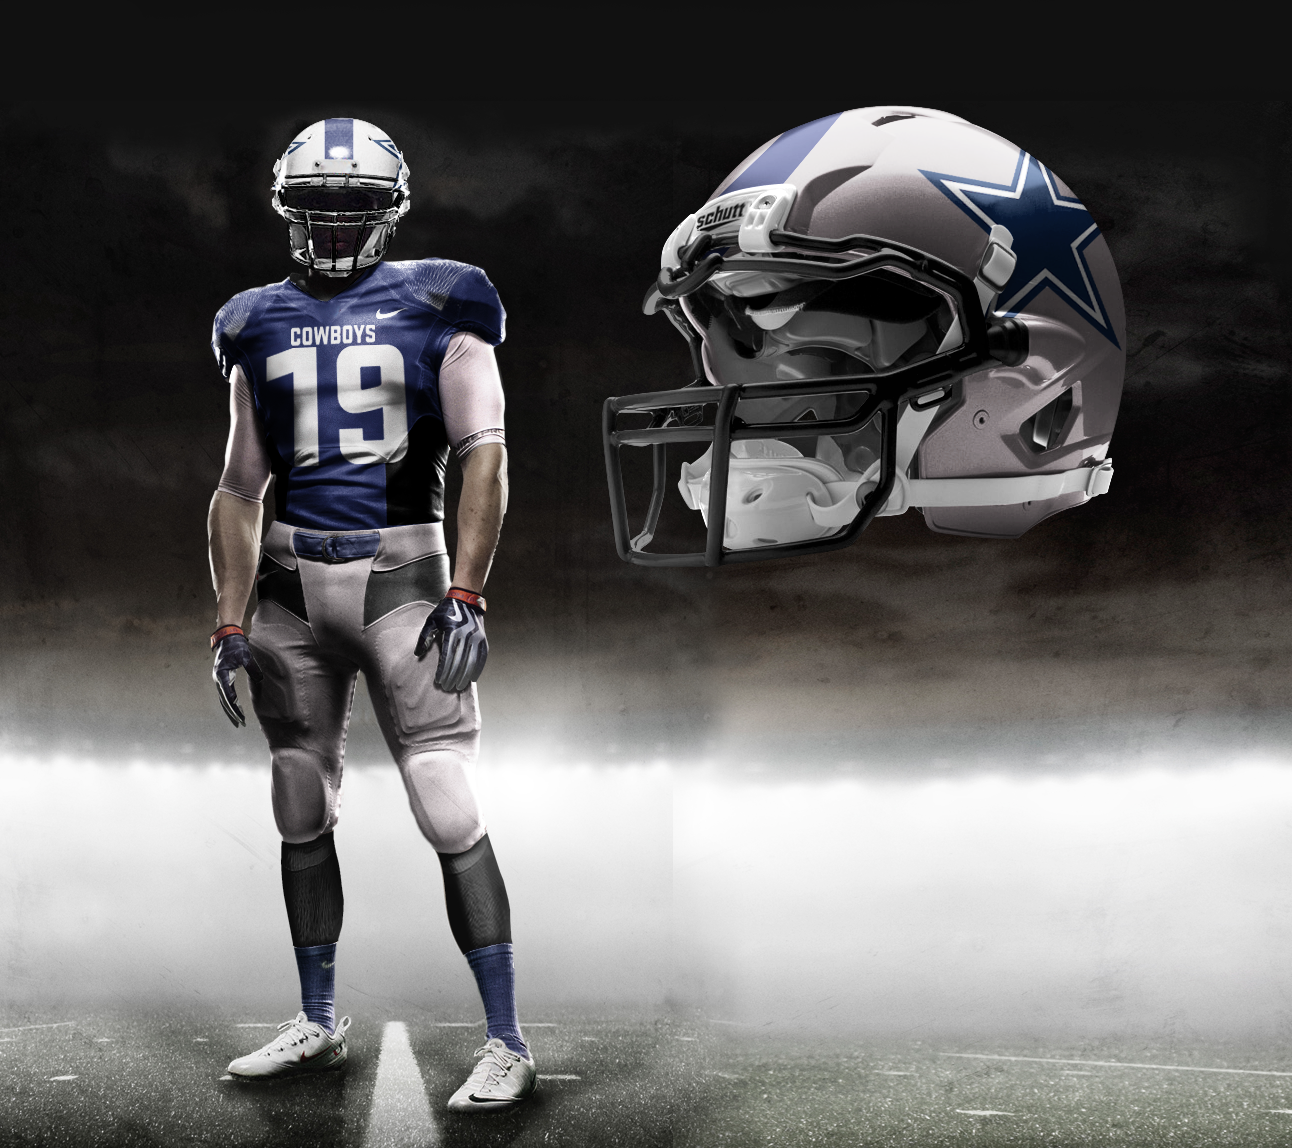 bb2f9b48f2d Nike Pro Combat NFL Uniforms: Check Out Fake Unis That Tricked Fans ...